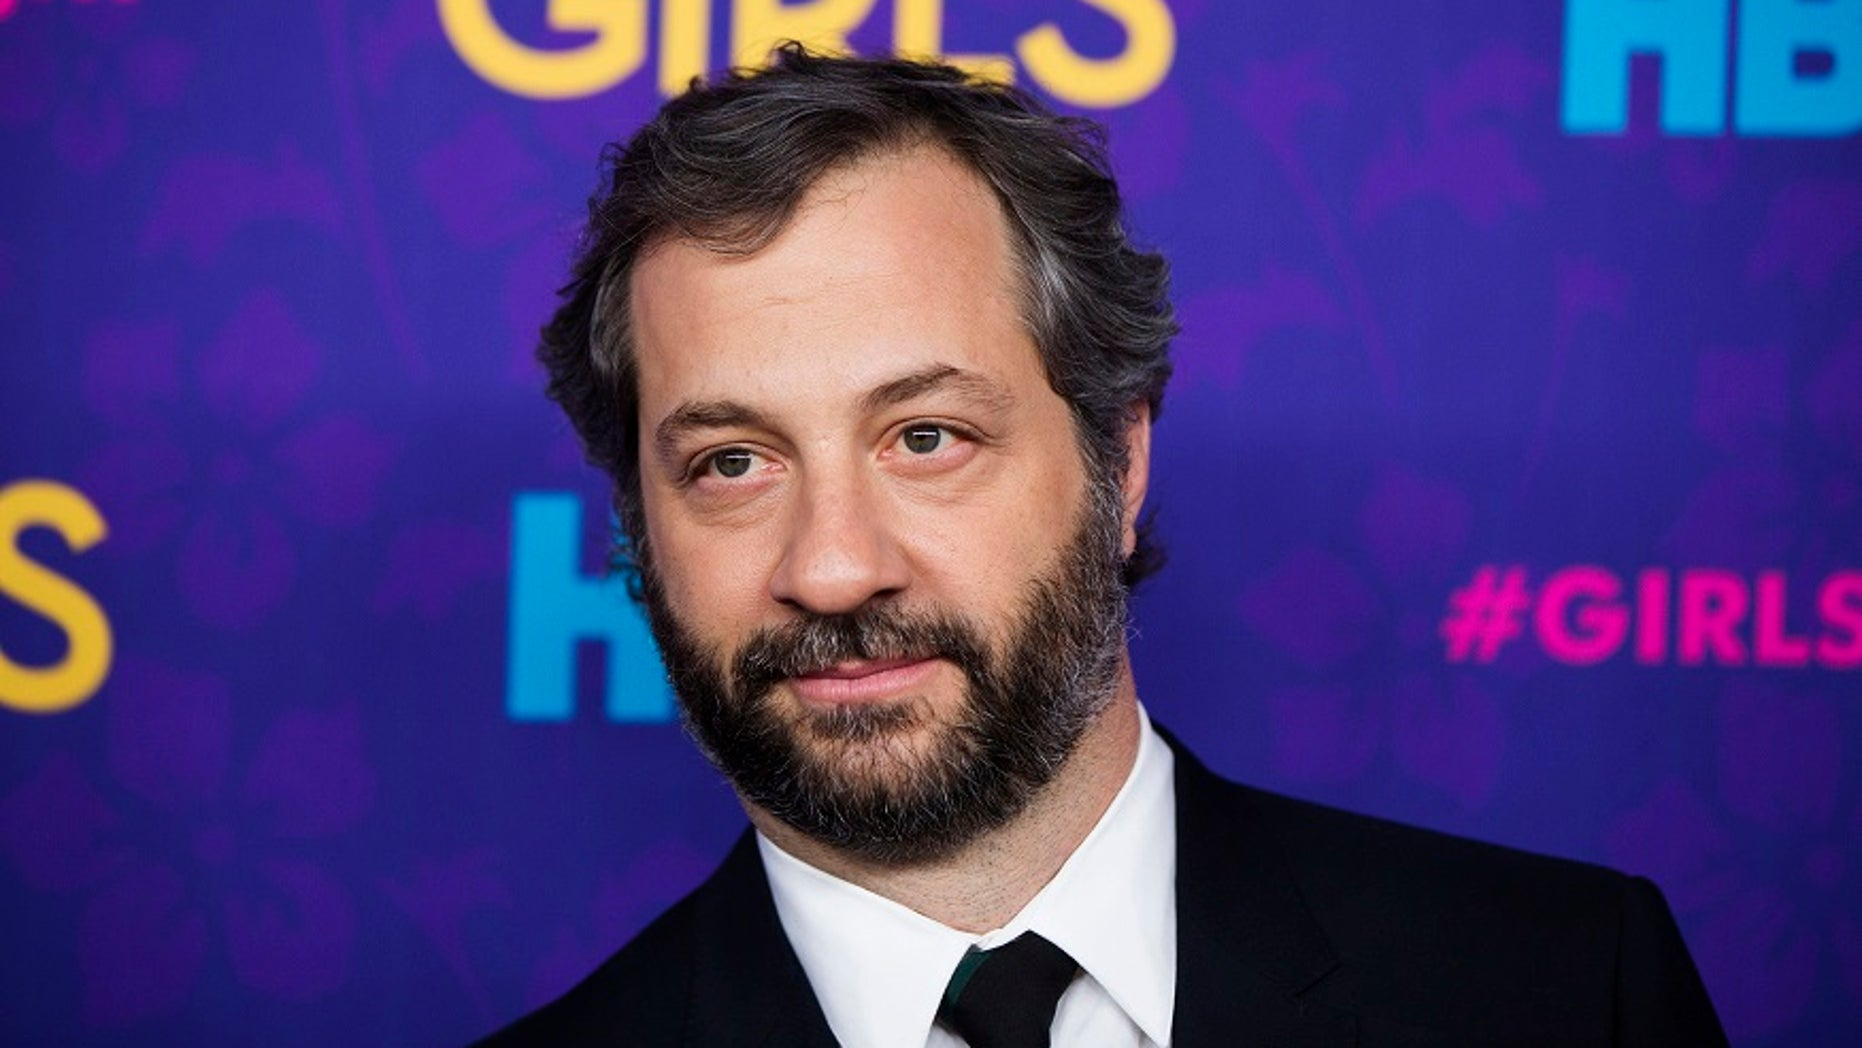 Judd Apatow took to Twitter to slam President Trump over his digs at the late  John McCain